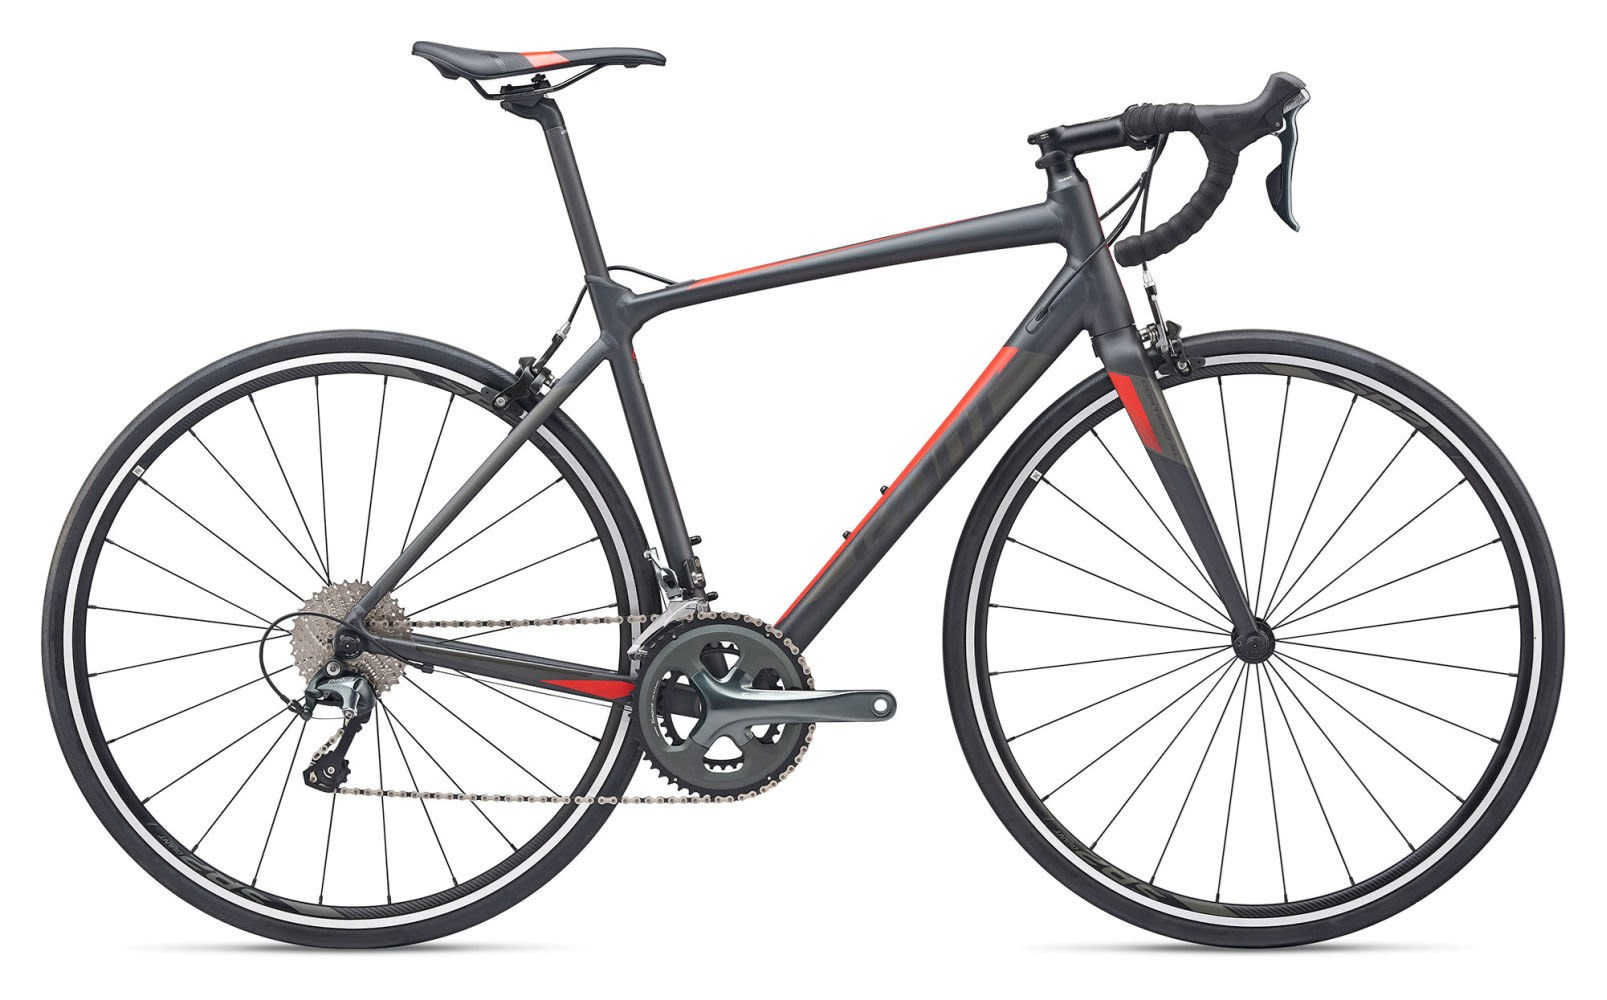 661ffa3e849 ... Racing Bikes 2019 Giant Contend SL 2 Mens Road bike in Grey. 0 (Be the  first to add a review!)